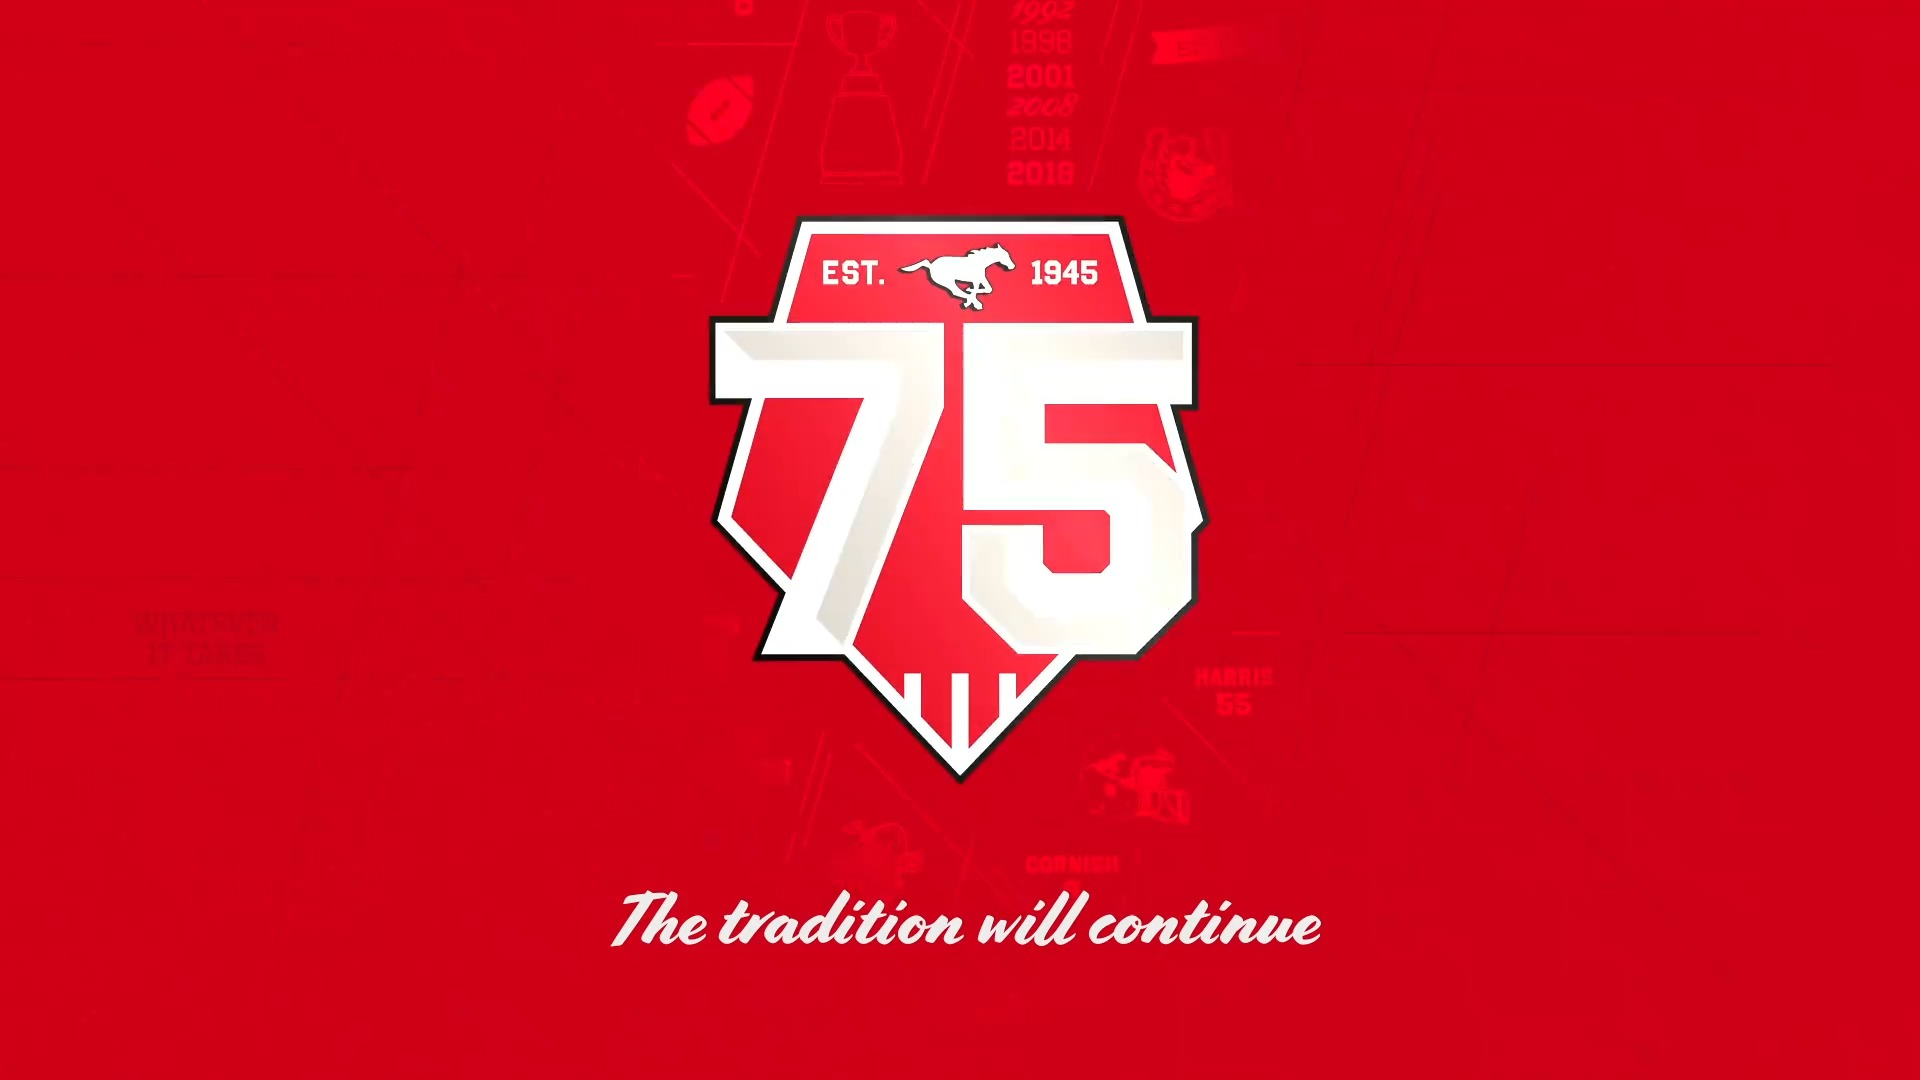 Stamps 75th Jersey - The Tradition Will Continue!